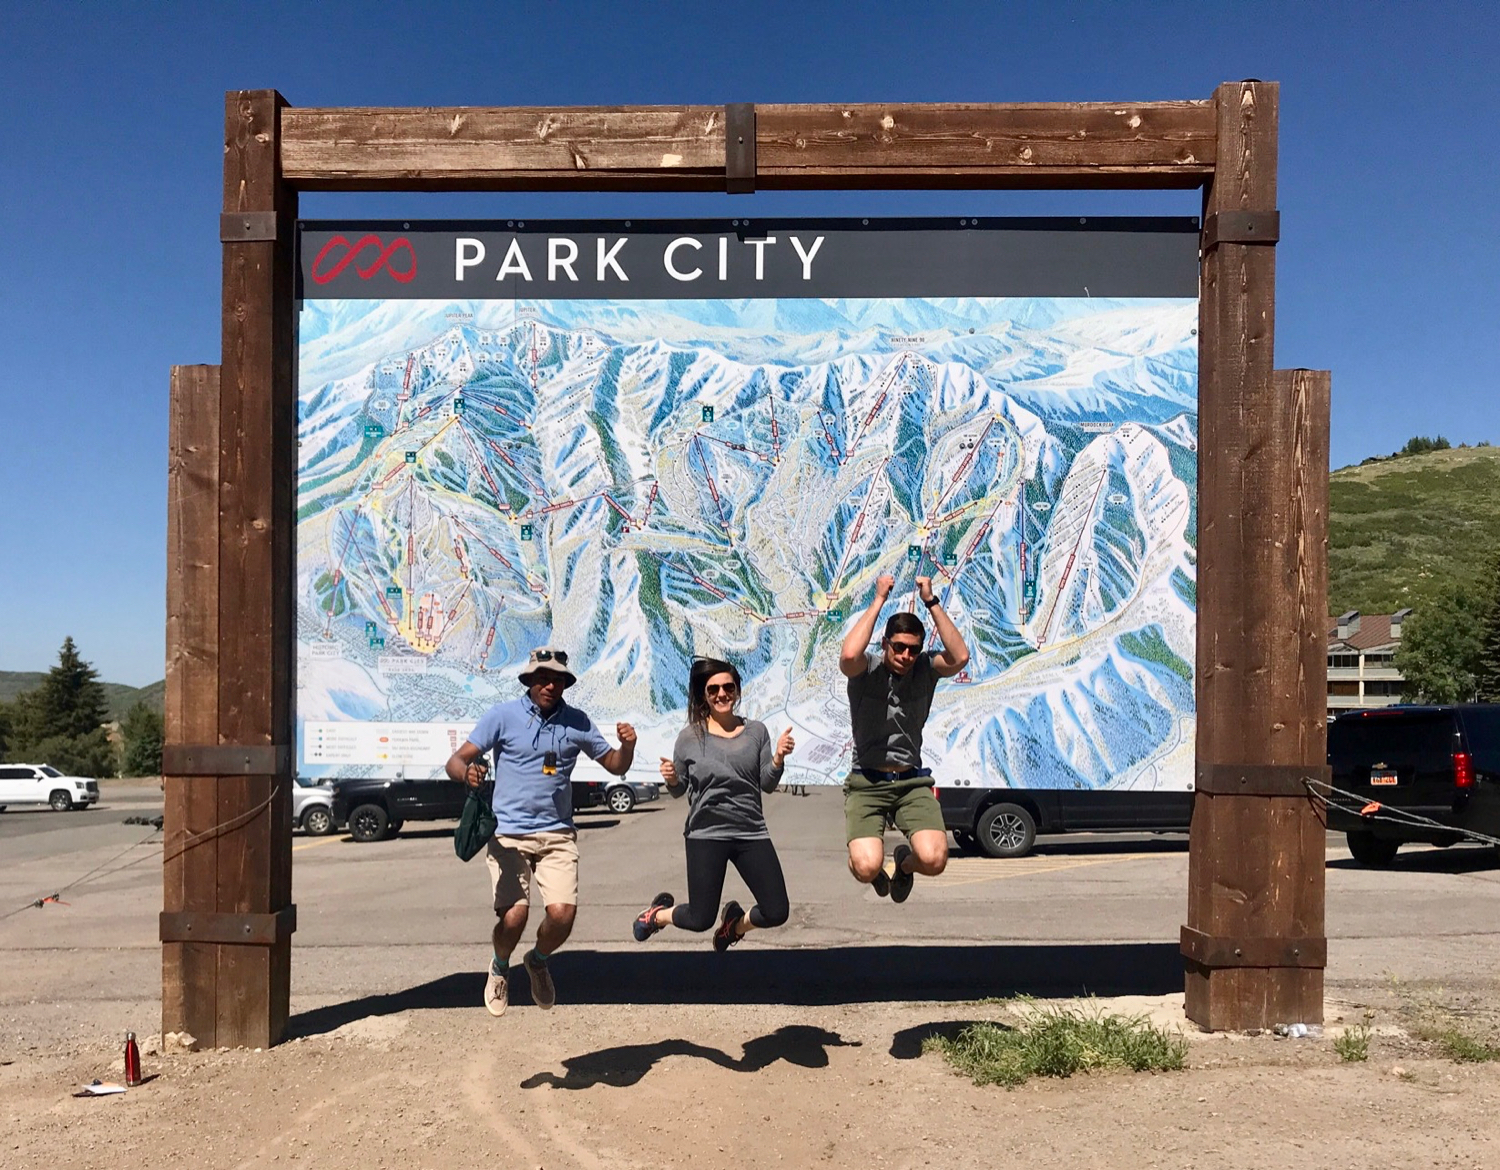 GPS Treasure Quest, a fun and exciting team geocaching event in Park City, Utah